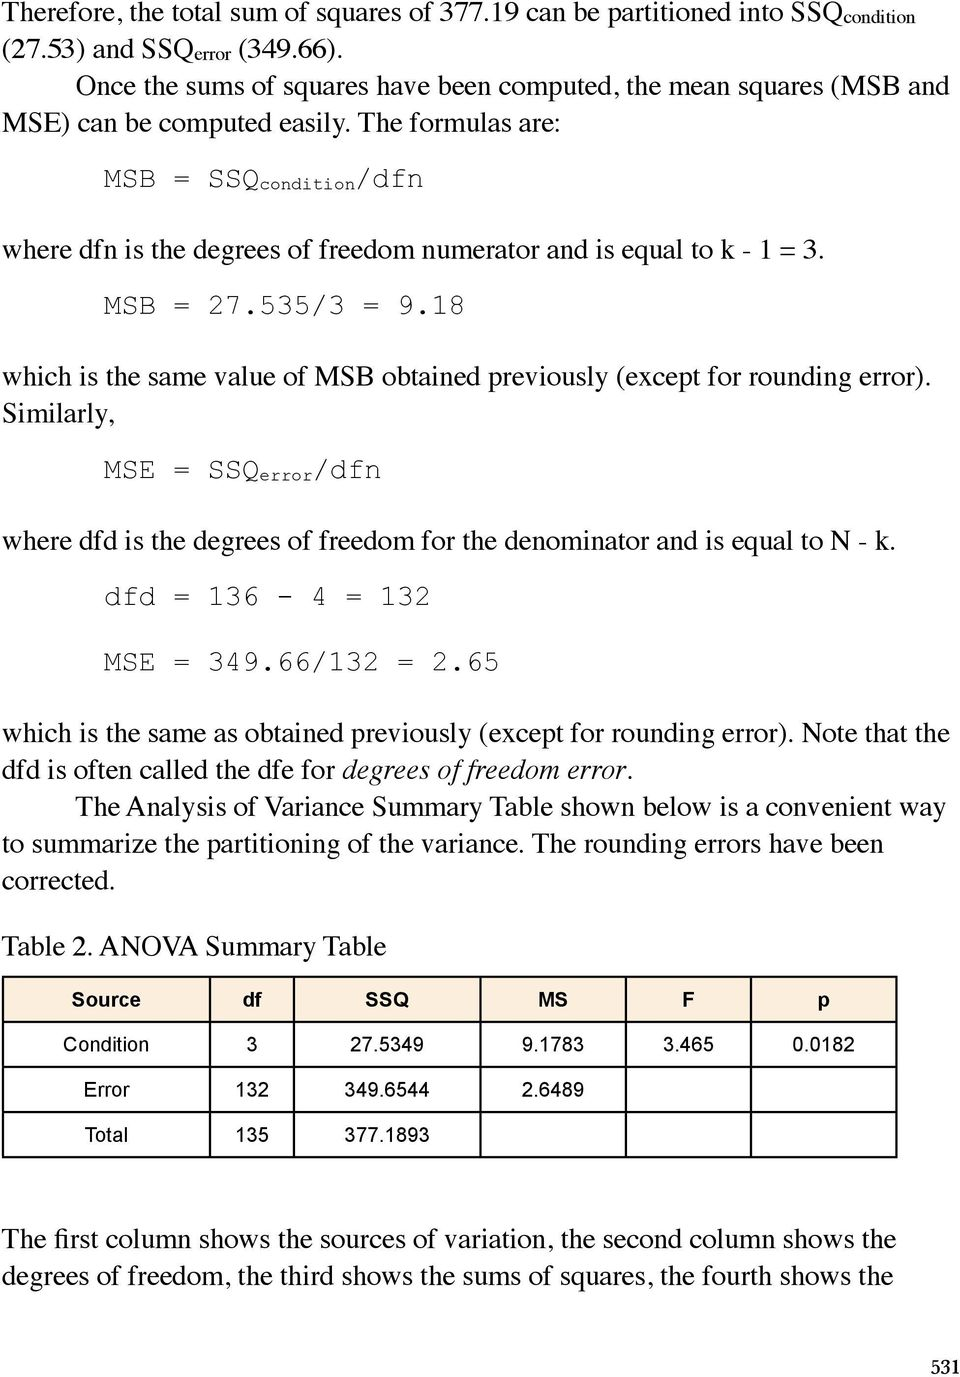 The formulas are: MSB = SSQ condition /dfn where dfn is the degrees of freedom numerator and is equal to k - 1 = 3. MSB = 27.535/3 = 9.